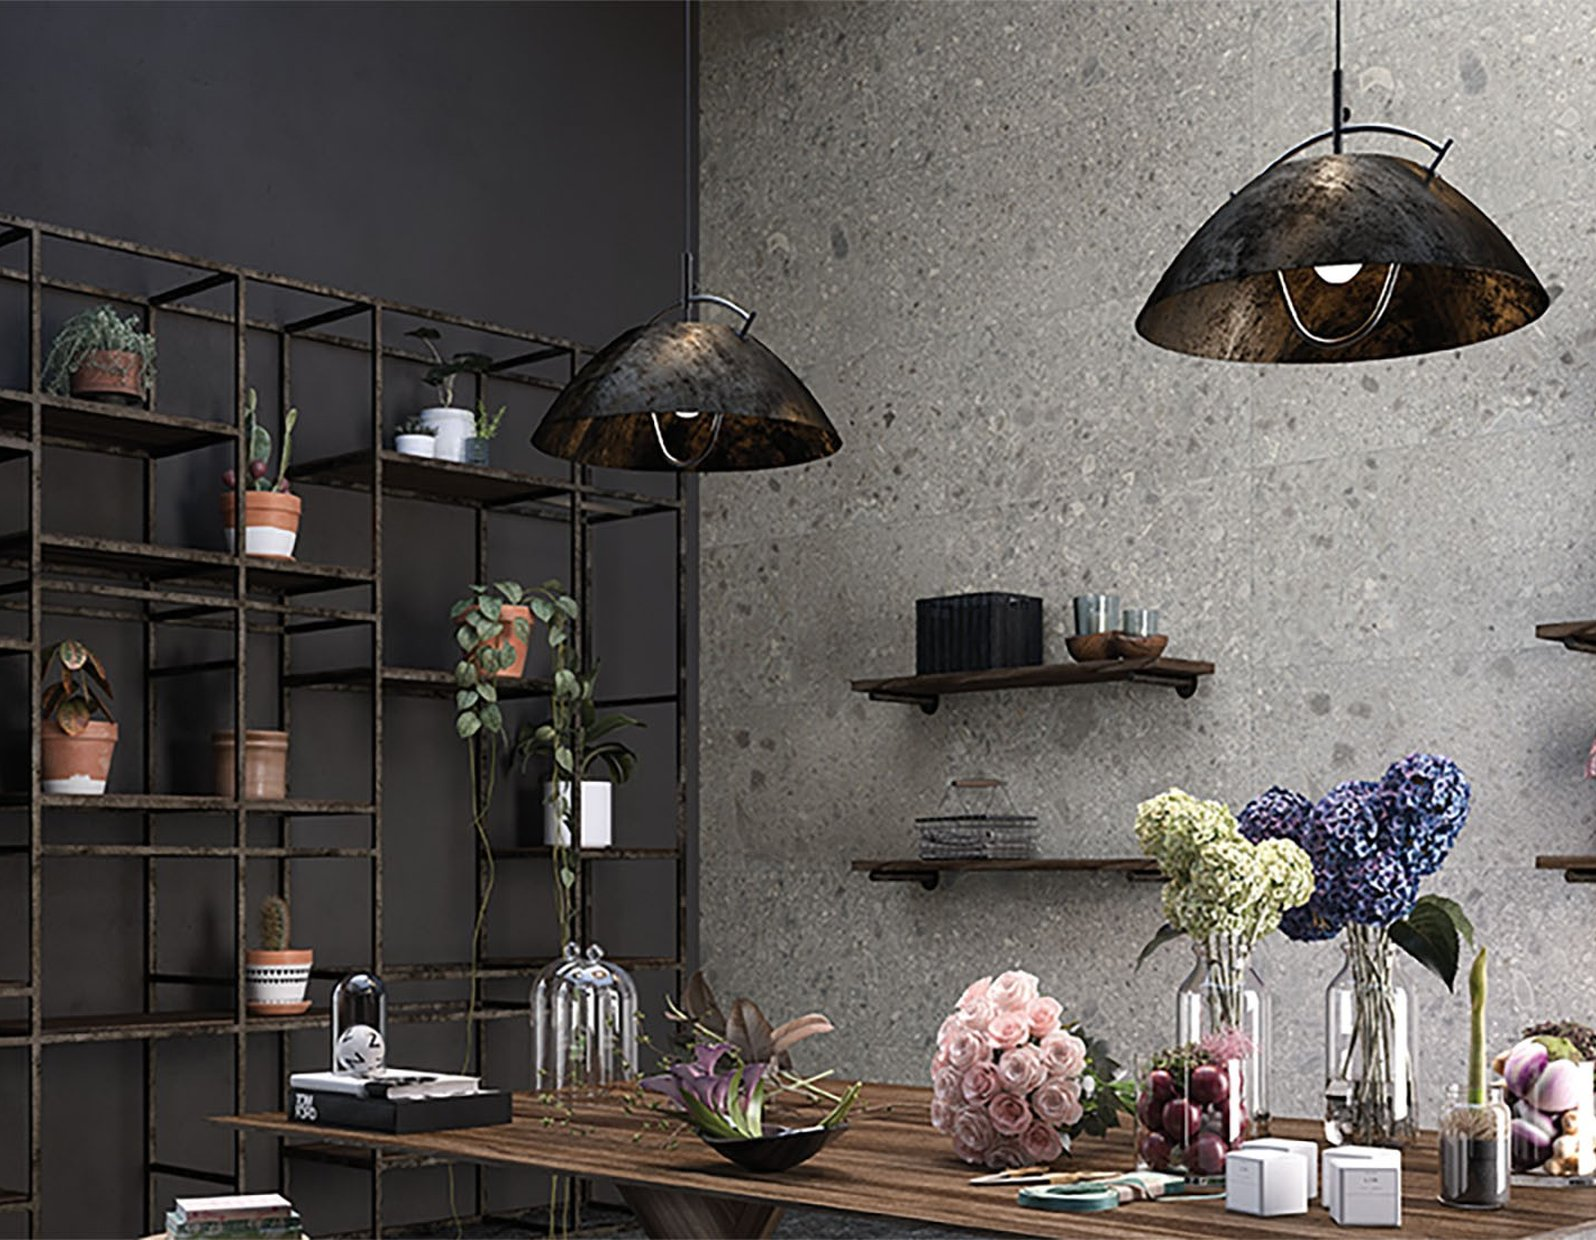 ceppo di gre' stone Black and Grey tiles Modern style Living